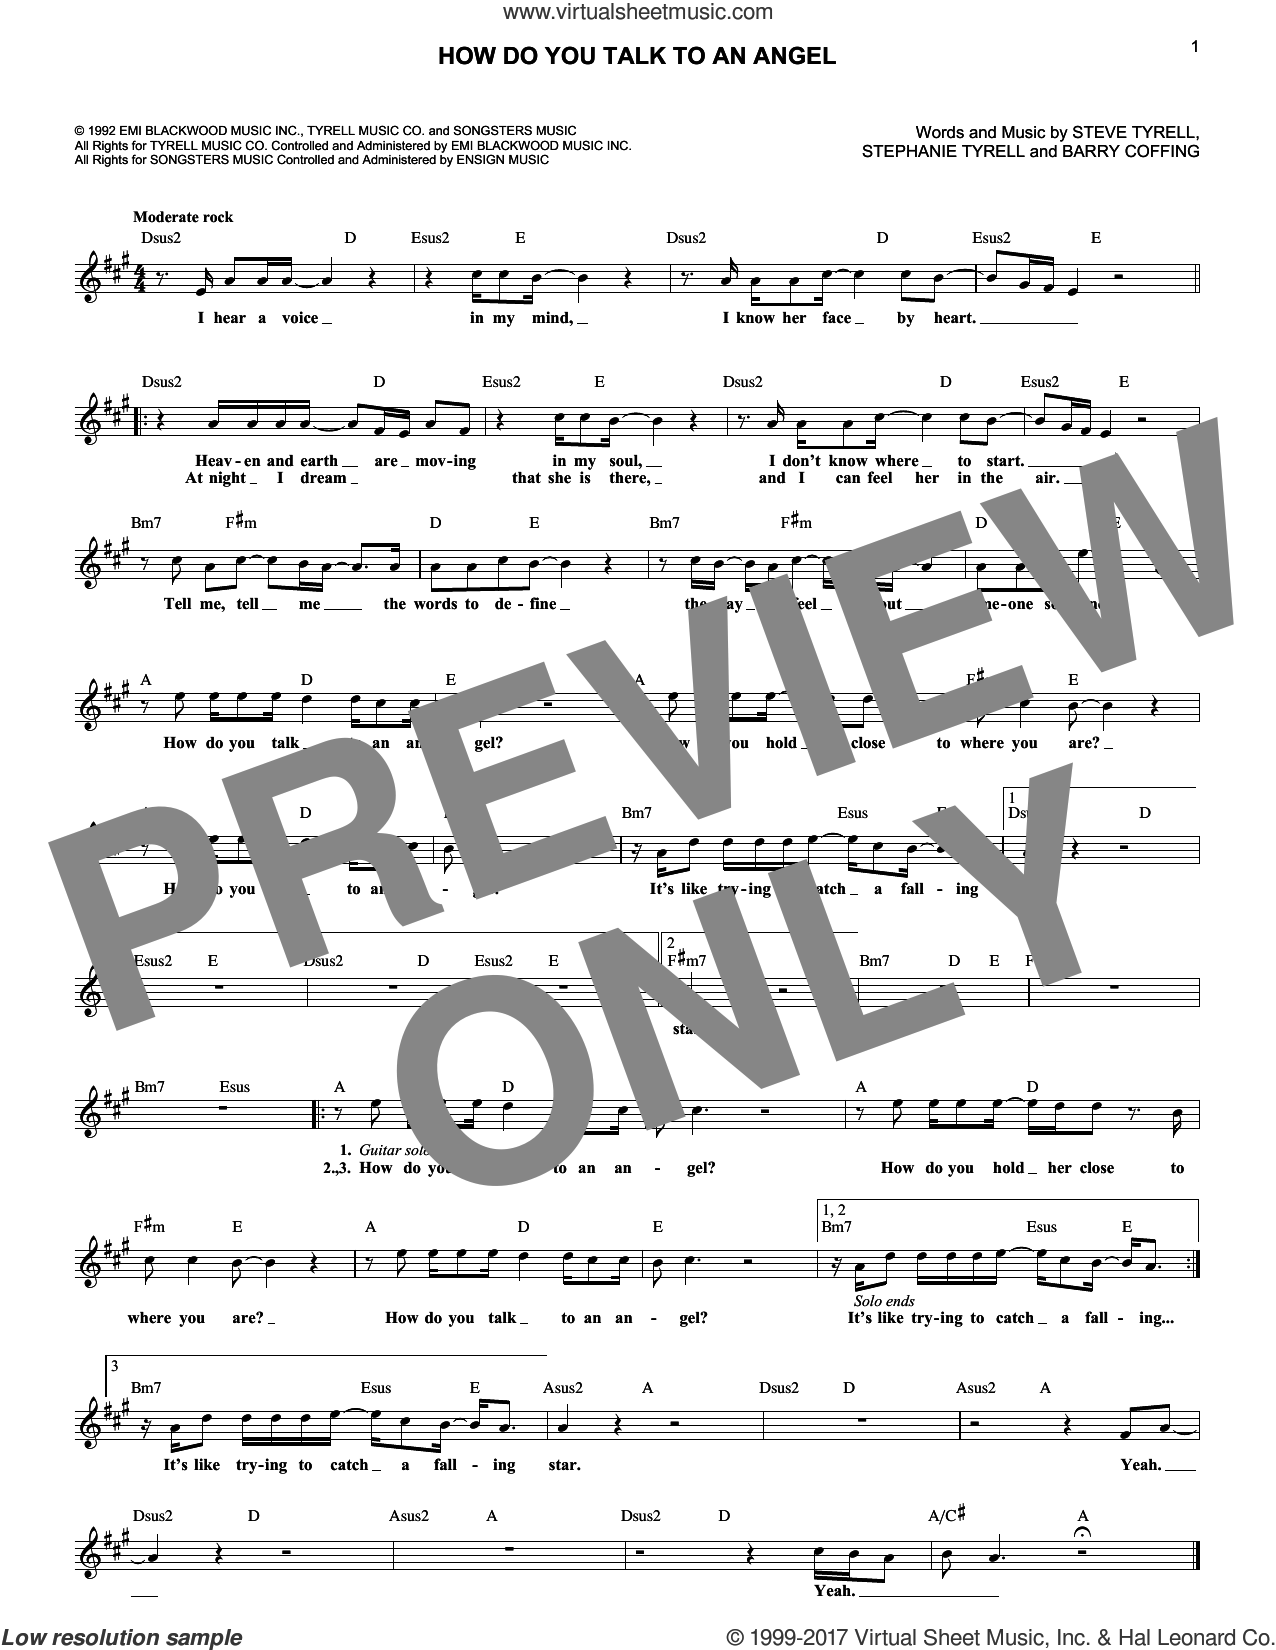 How Do You Talk To An Angel sheet music for voice and other instruments (fake book) by Steve Tyrell, Barry Coffing and Stephanie Tyrell, intermediate. Score Image Preview.